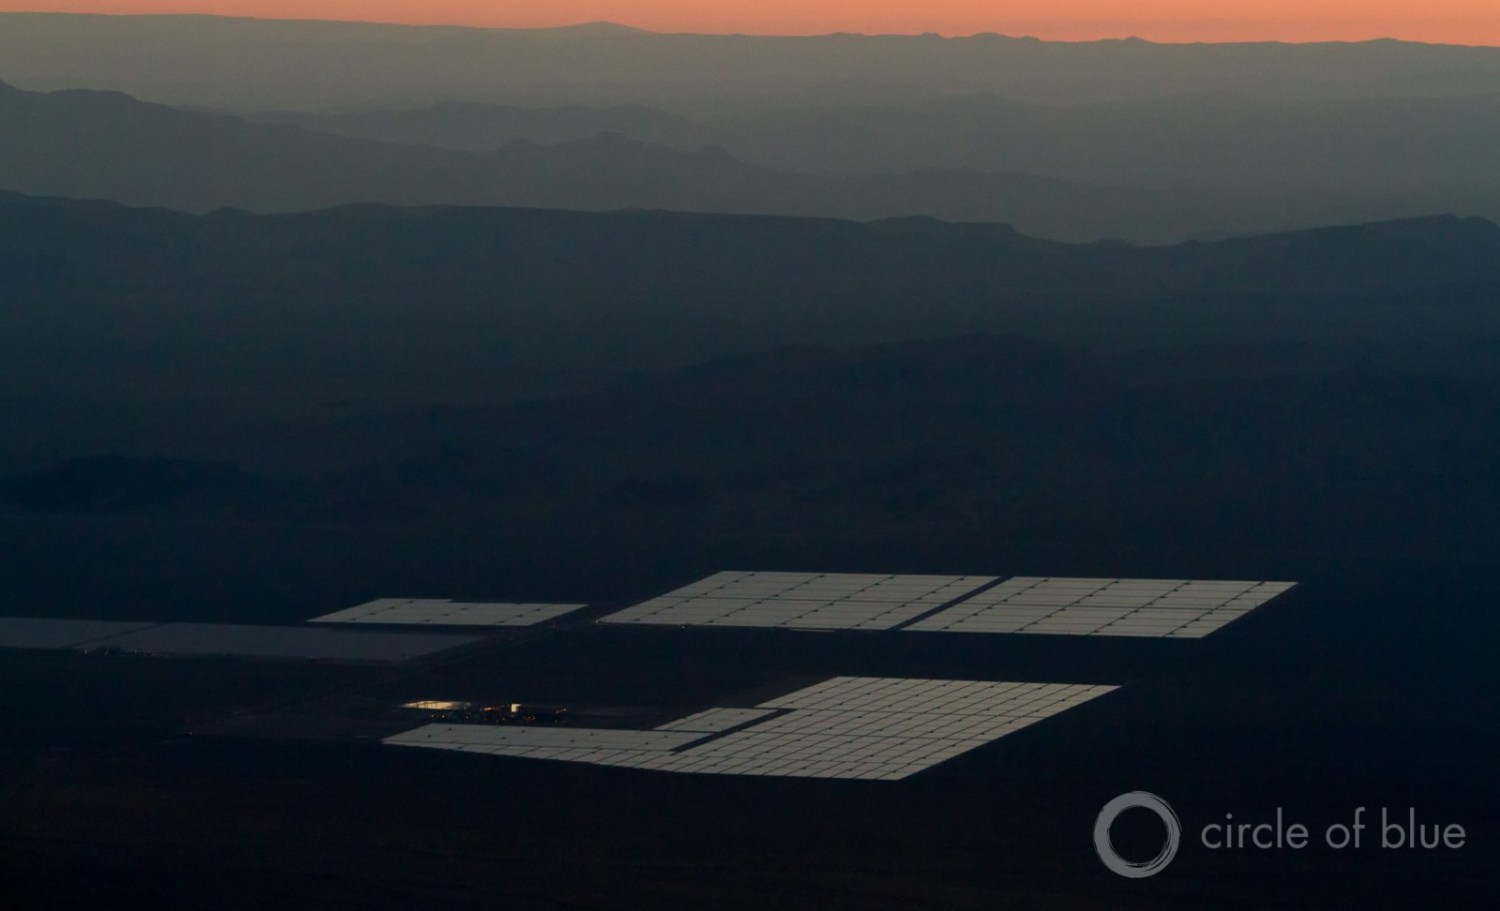 Renewable sources of electricity, like this photovoltaic solar plant in Nevada, use little water and are not nearly as disrupted by water scarcity as conventional fossil fuel or nuclear plants. Photo © J. Carl Ganter / Circle of Blue